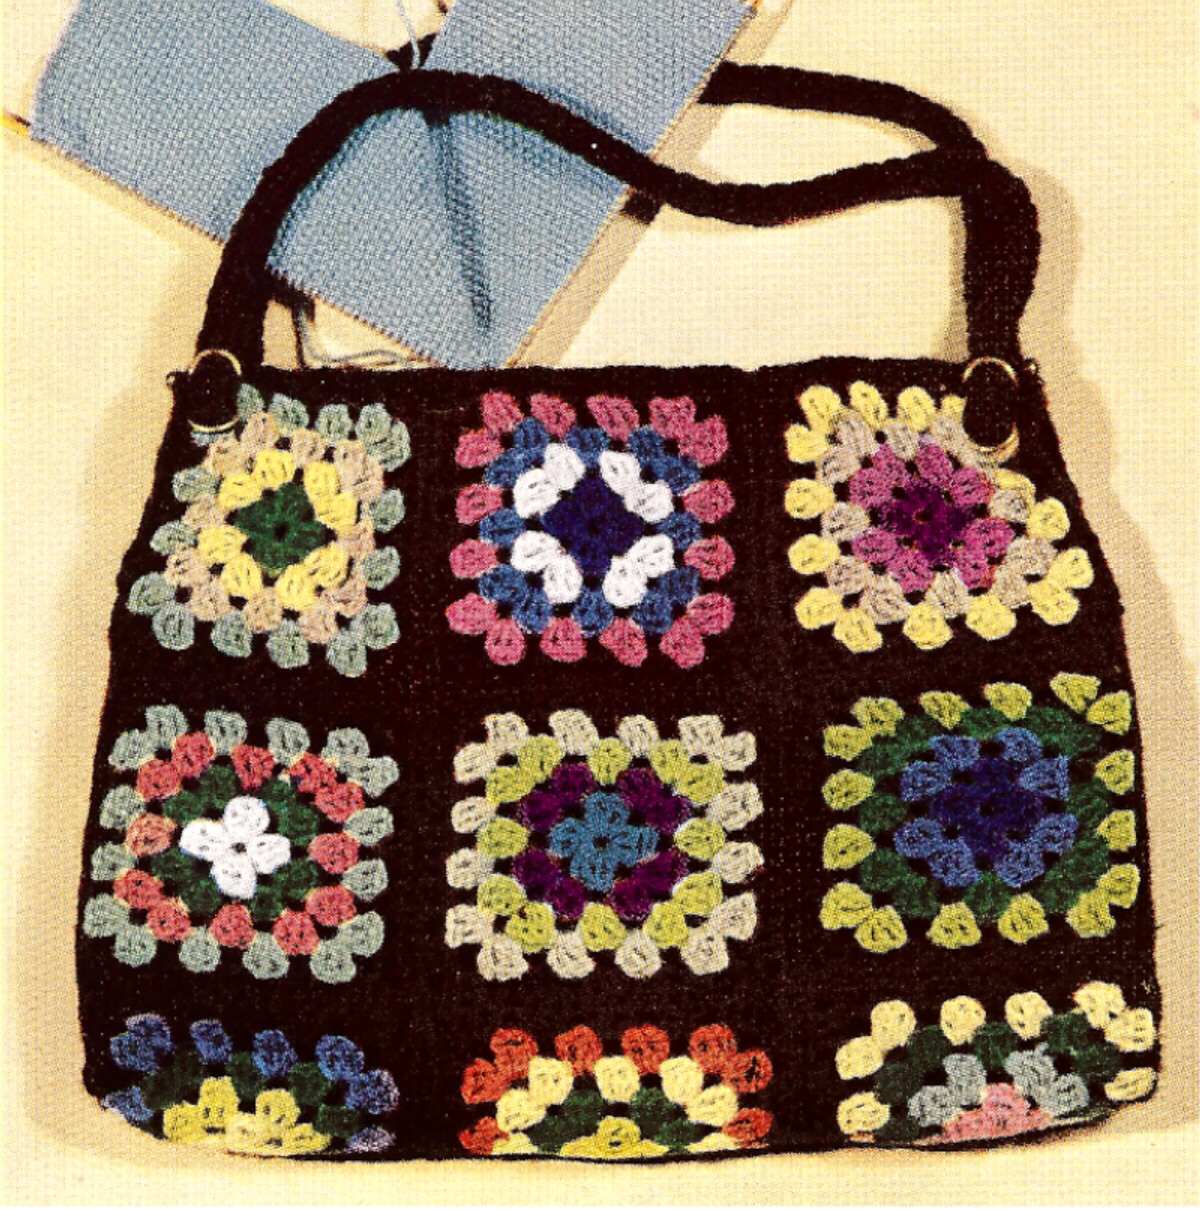 Crochet Granny Square Purse Pattern : Vintage Crochet PATTERN to make Granny Square Purse Tote Work Bag ...